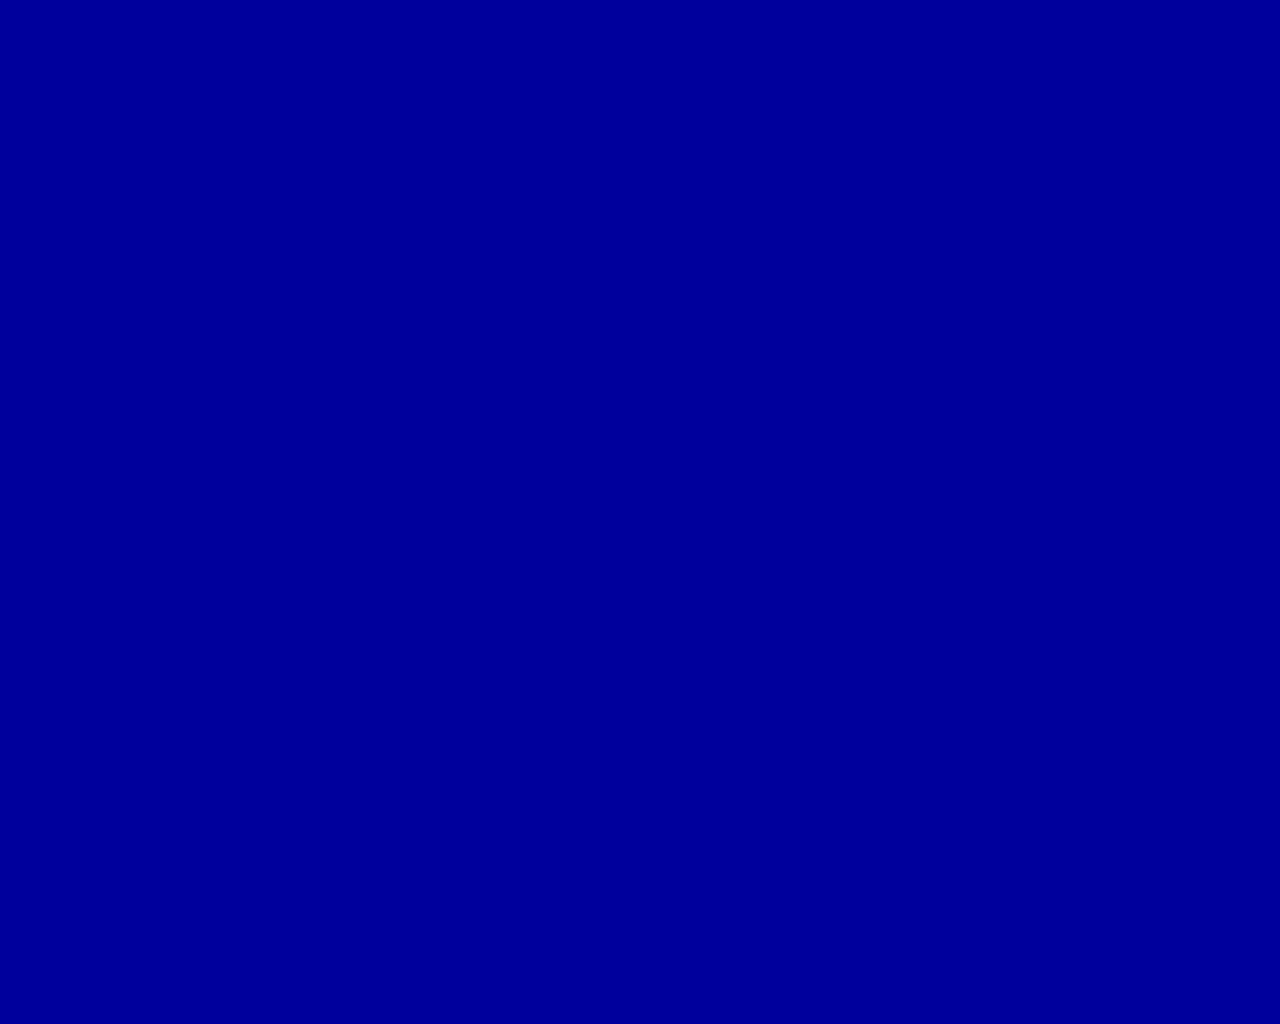 1280x1024 Duke Blue Solid Color Background